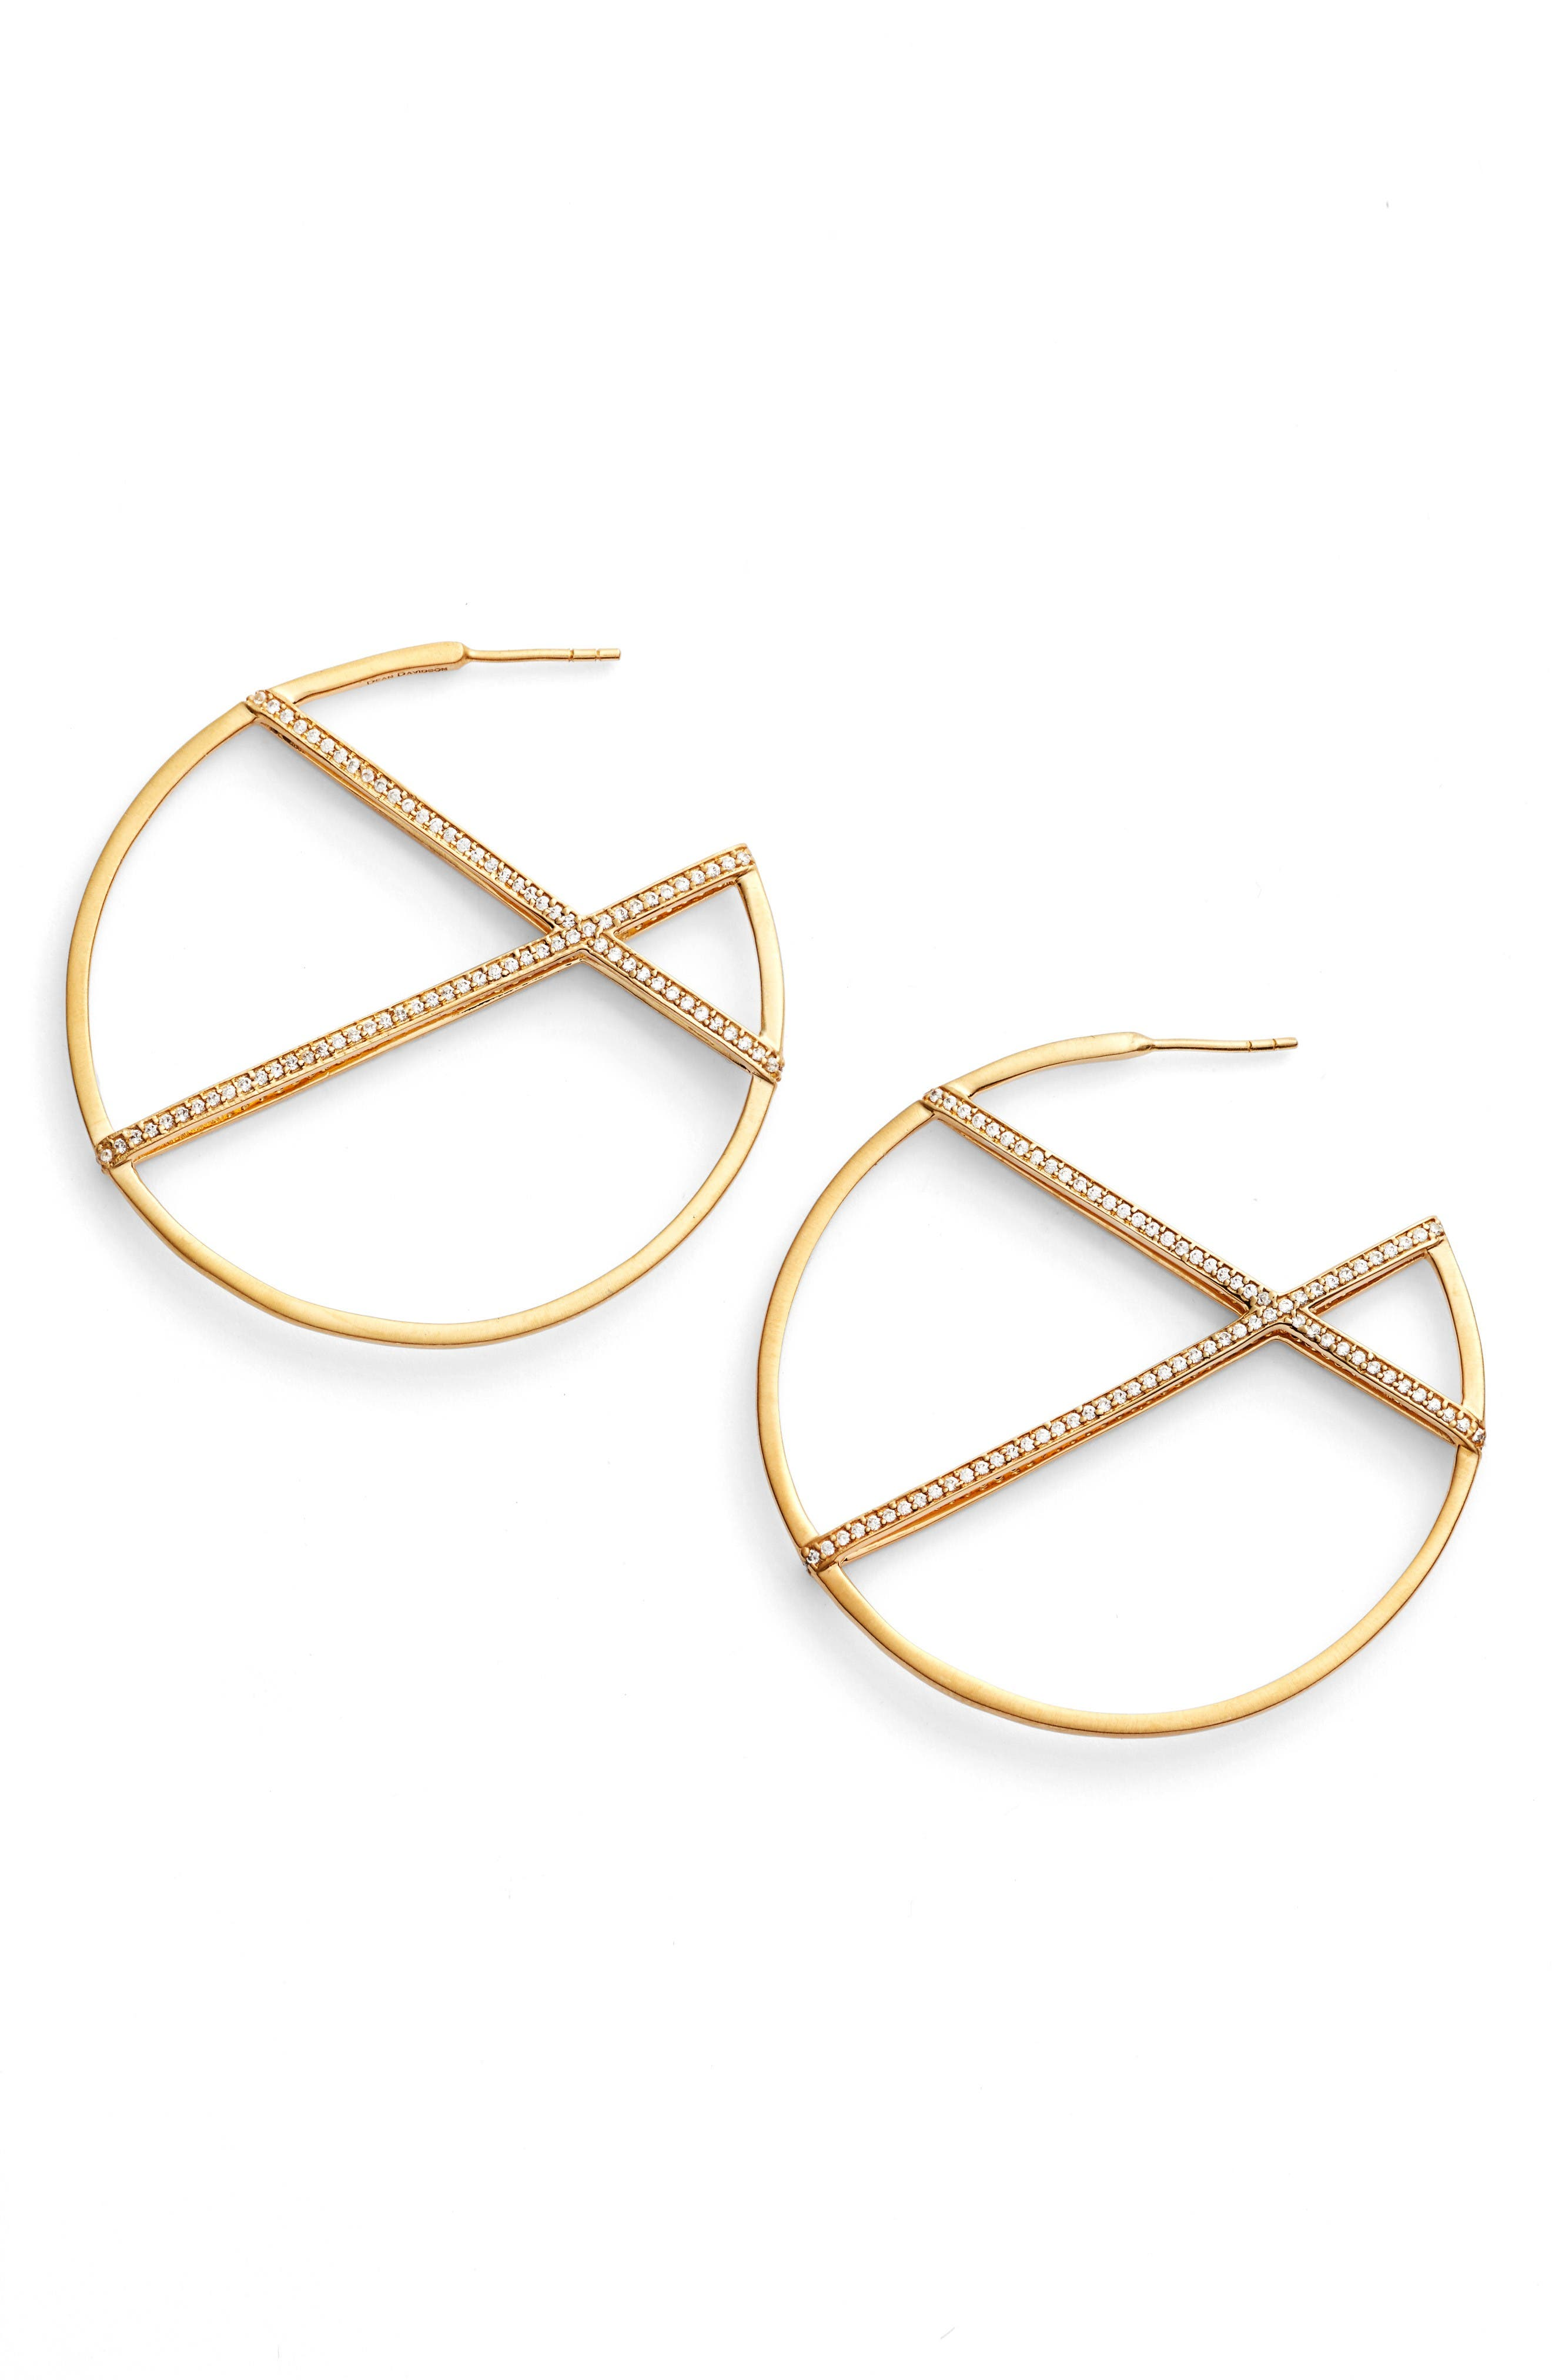 Continuous Hoop Earrings,                         Main,                         color, White Topaz/ Gold